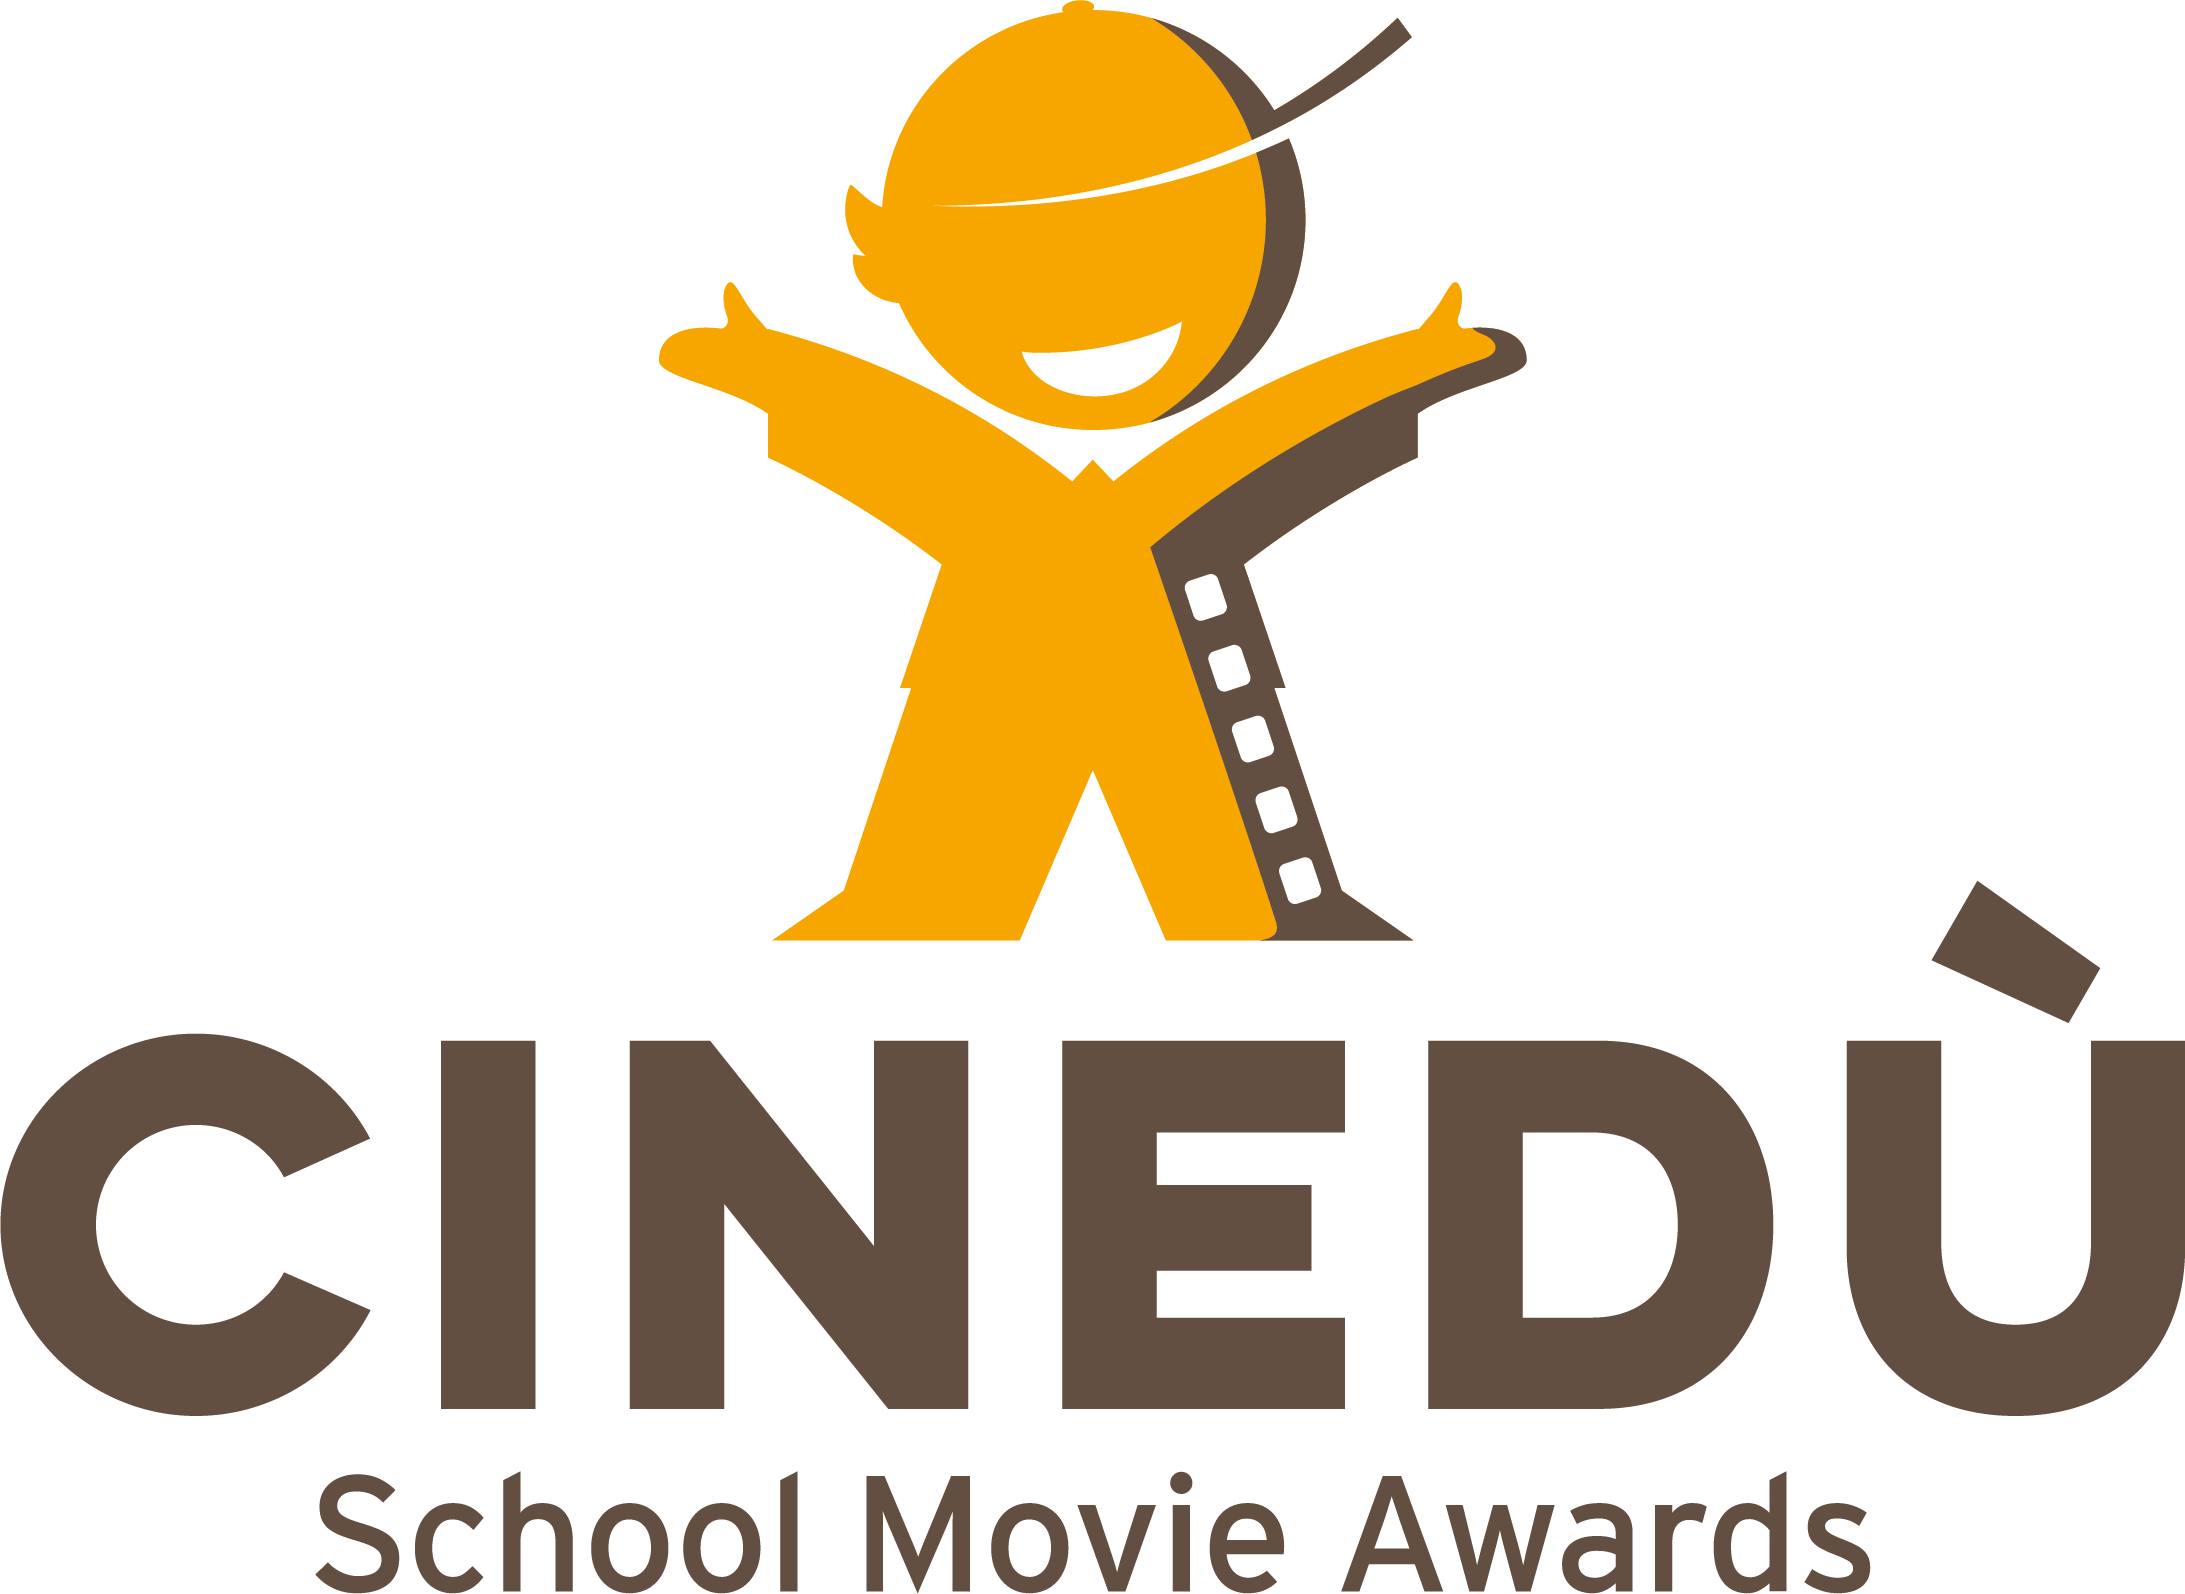 CINEDÙ- School Movie Awards